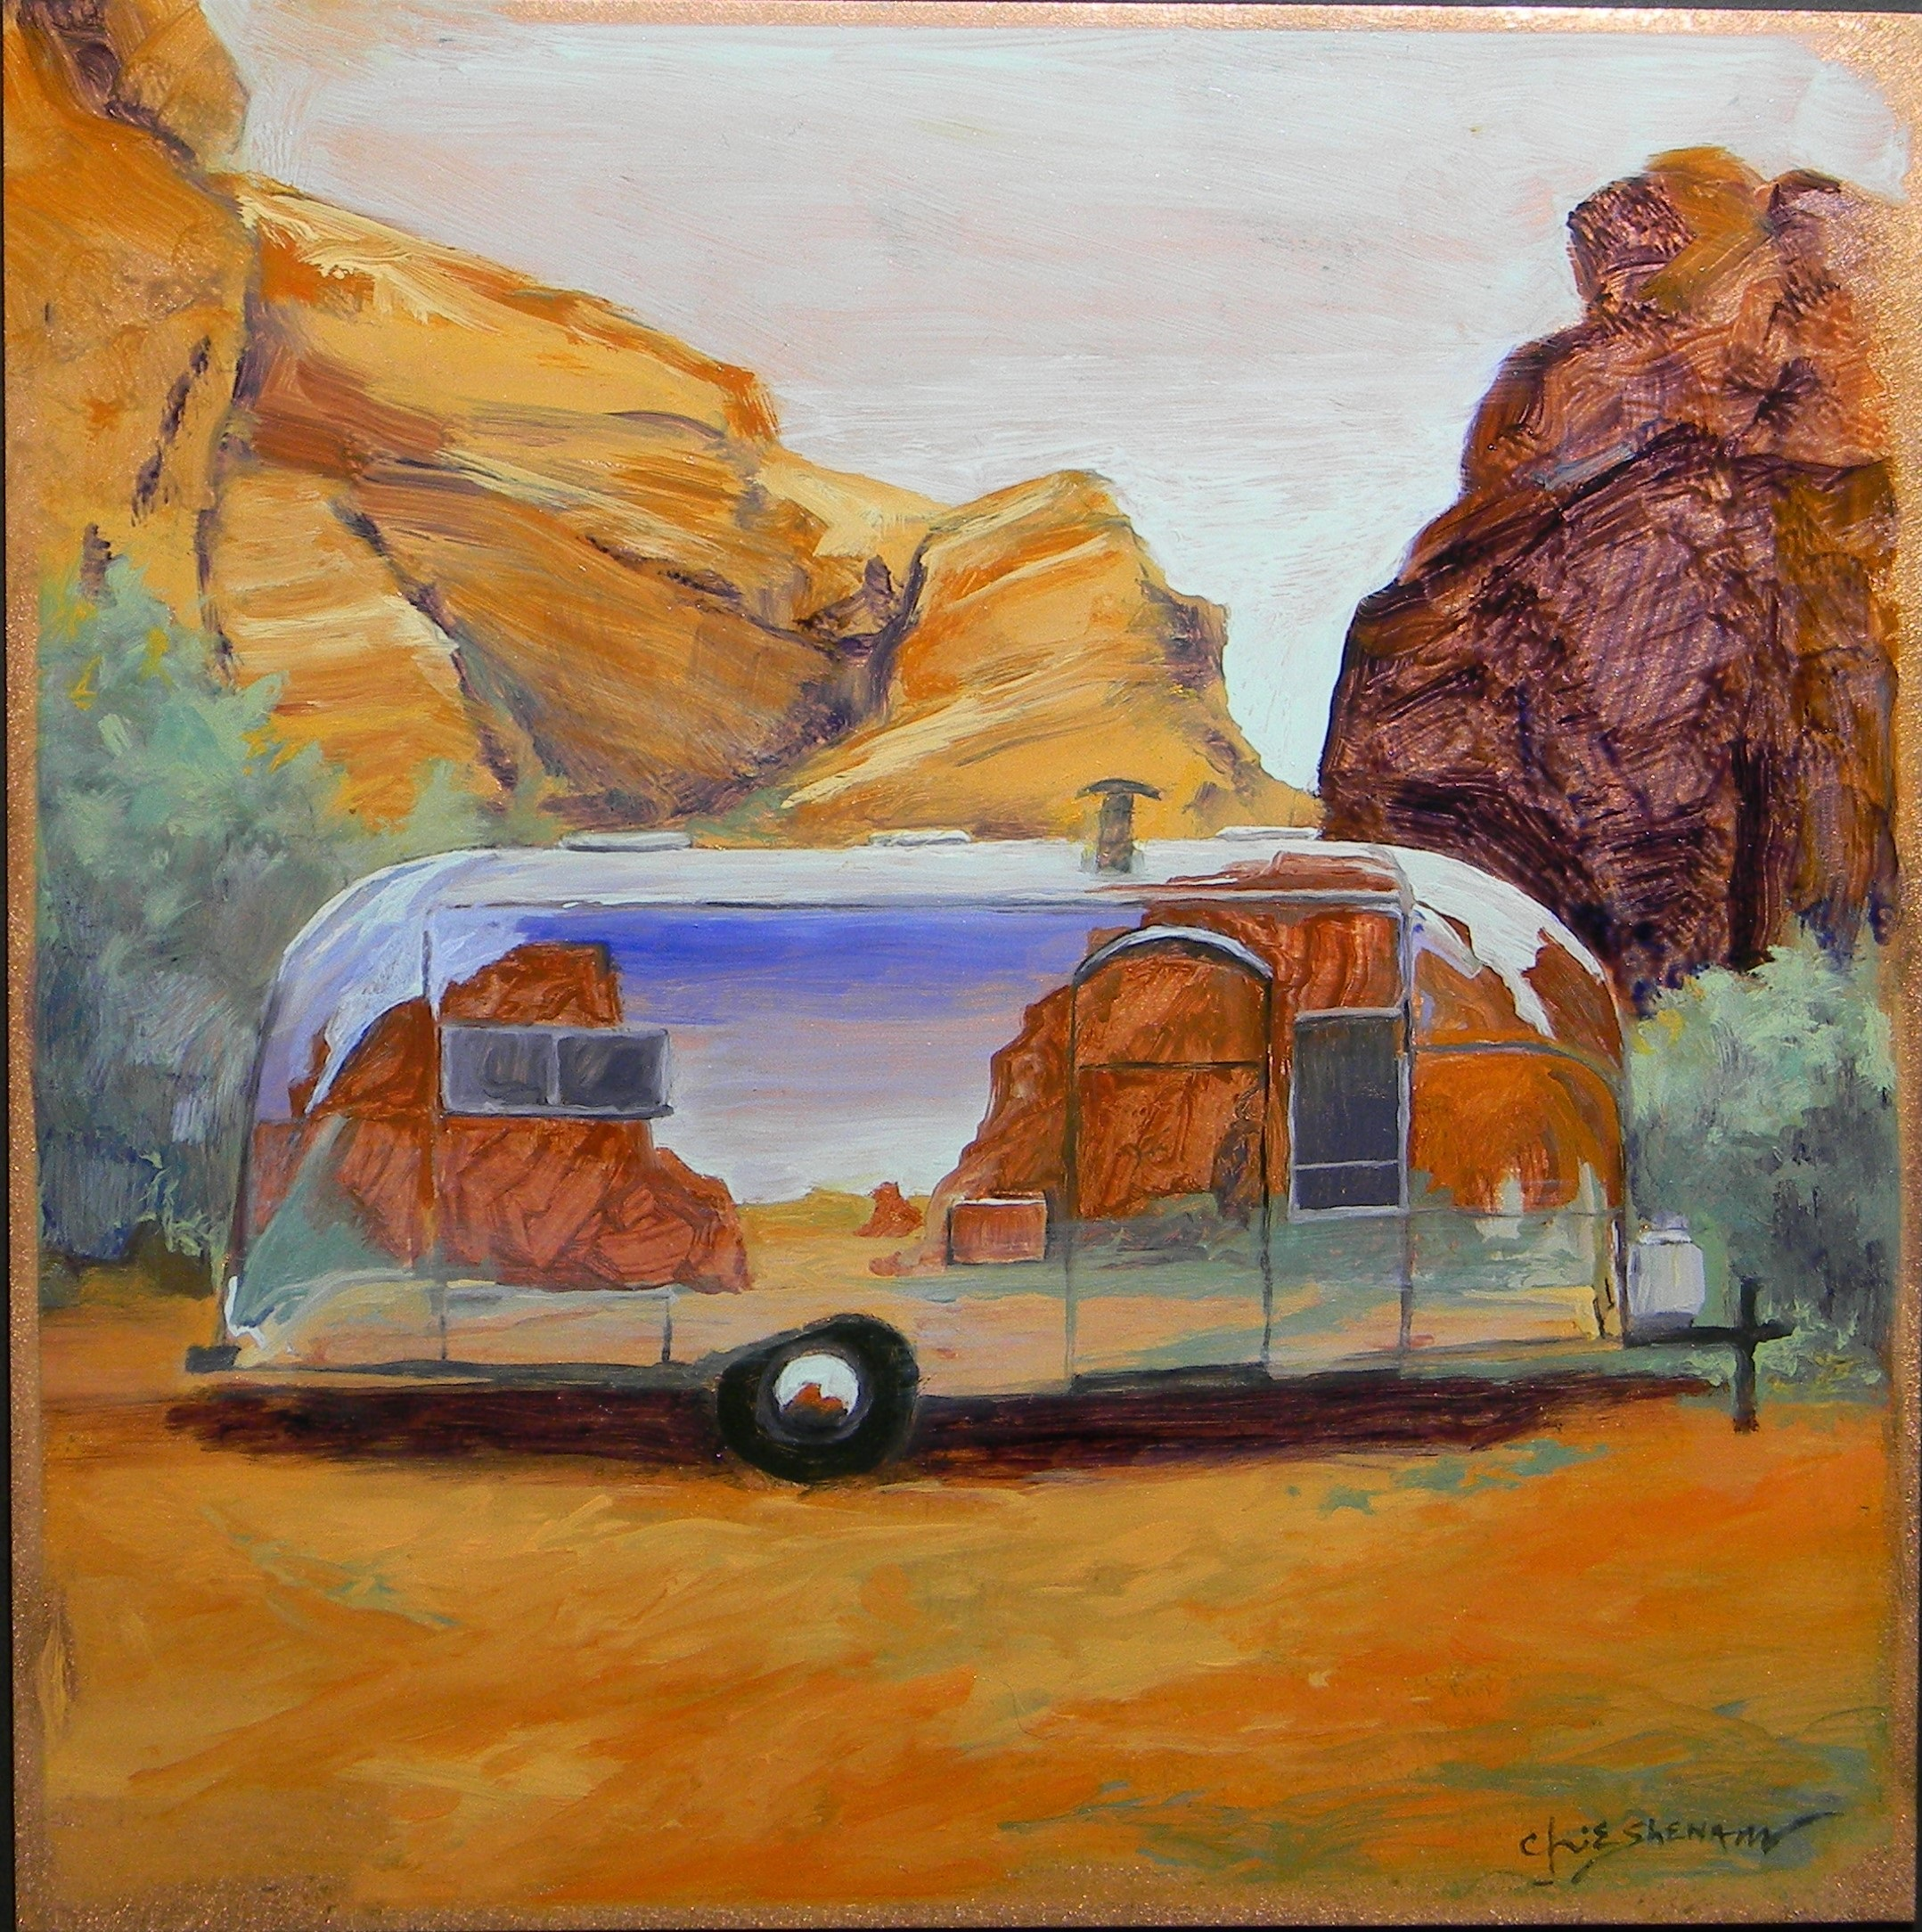 Airstream in the red rock country 12x12 oil on copper $400.00